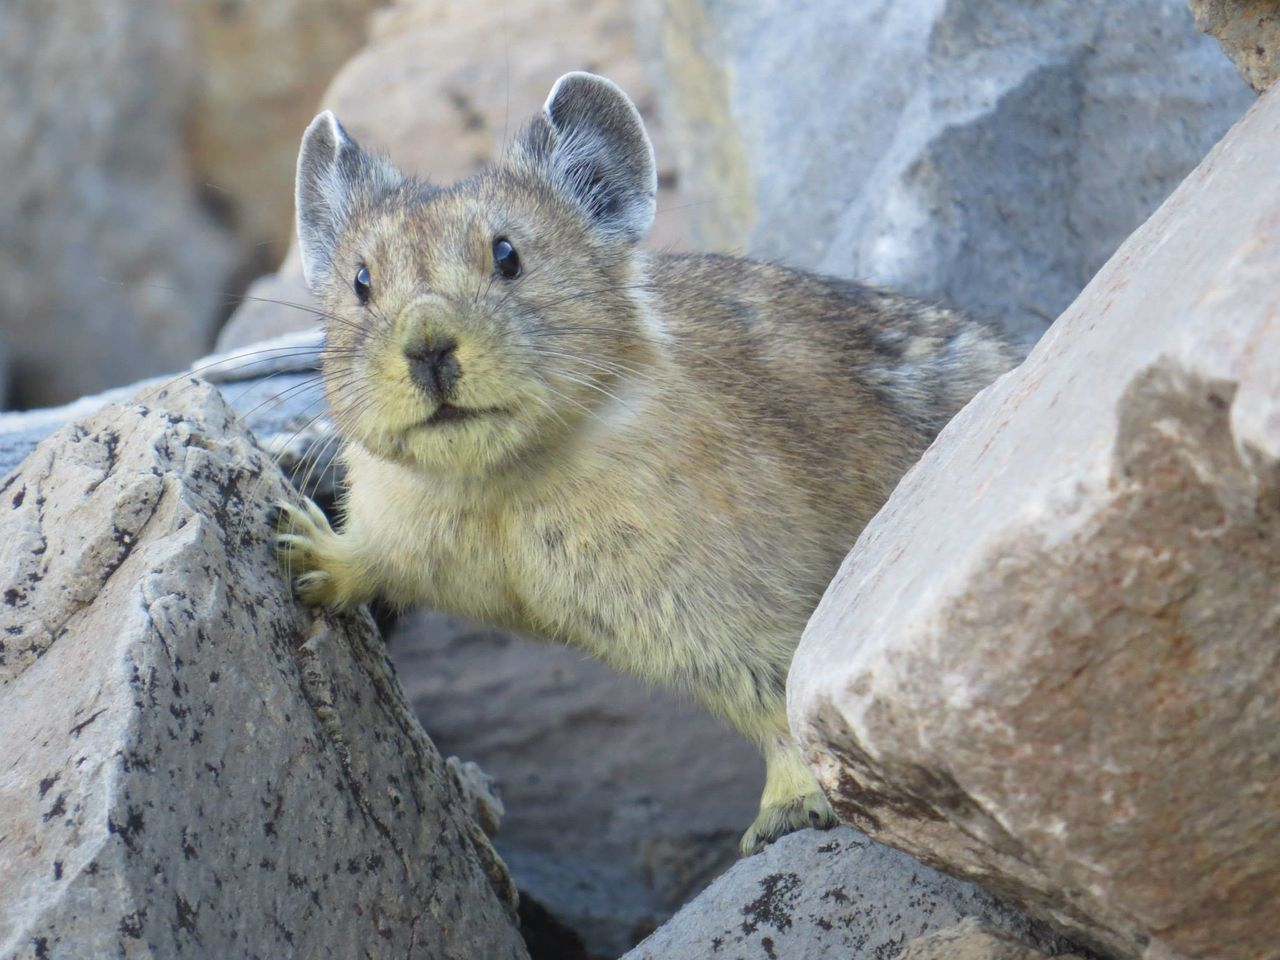 """The FWS said this week that it will be """"re-evaluating the status of the pika in the coming weeks and months."""""""